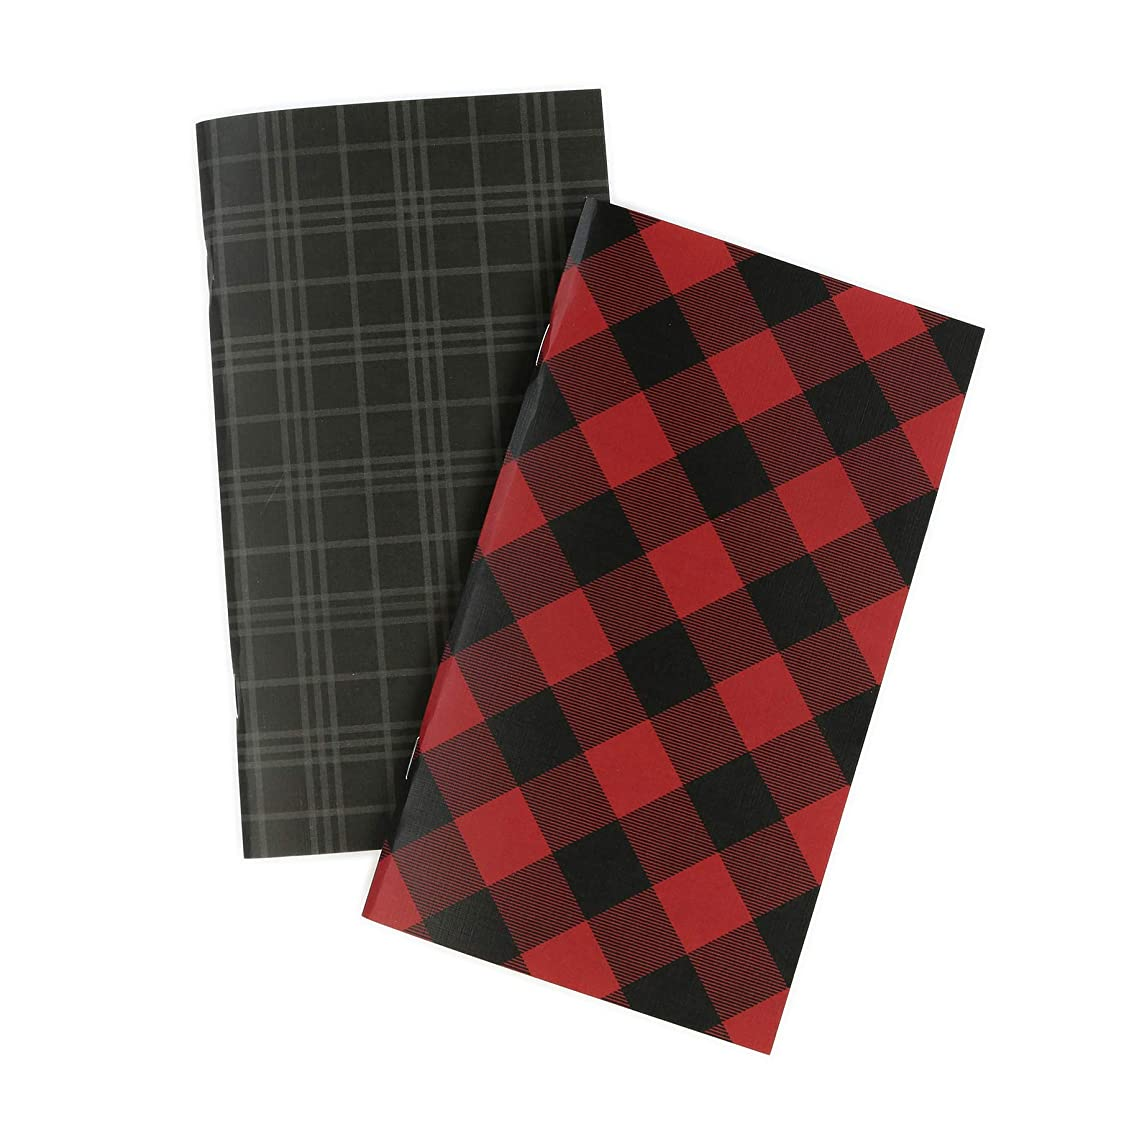 Echo Park Paper Company TNP1002 Red Buffalo Travelers Notebook Insert -Lined Paper, Black